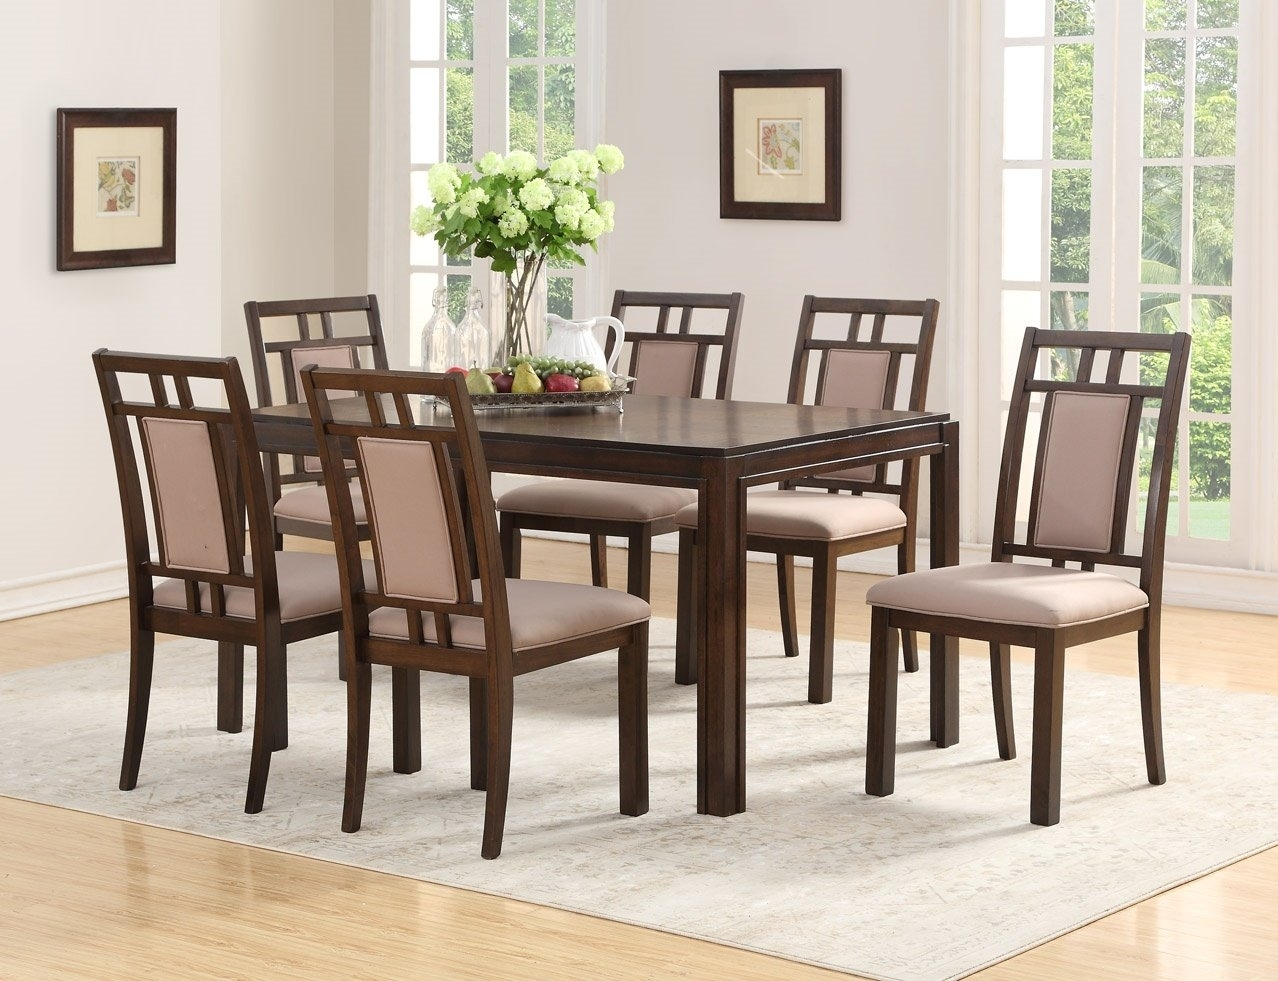 Featured Image of Parquet 7 Piece Dining Sets